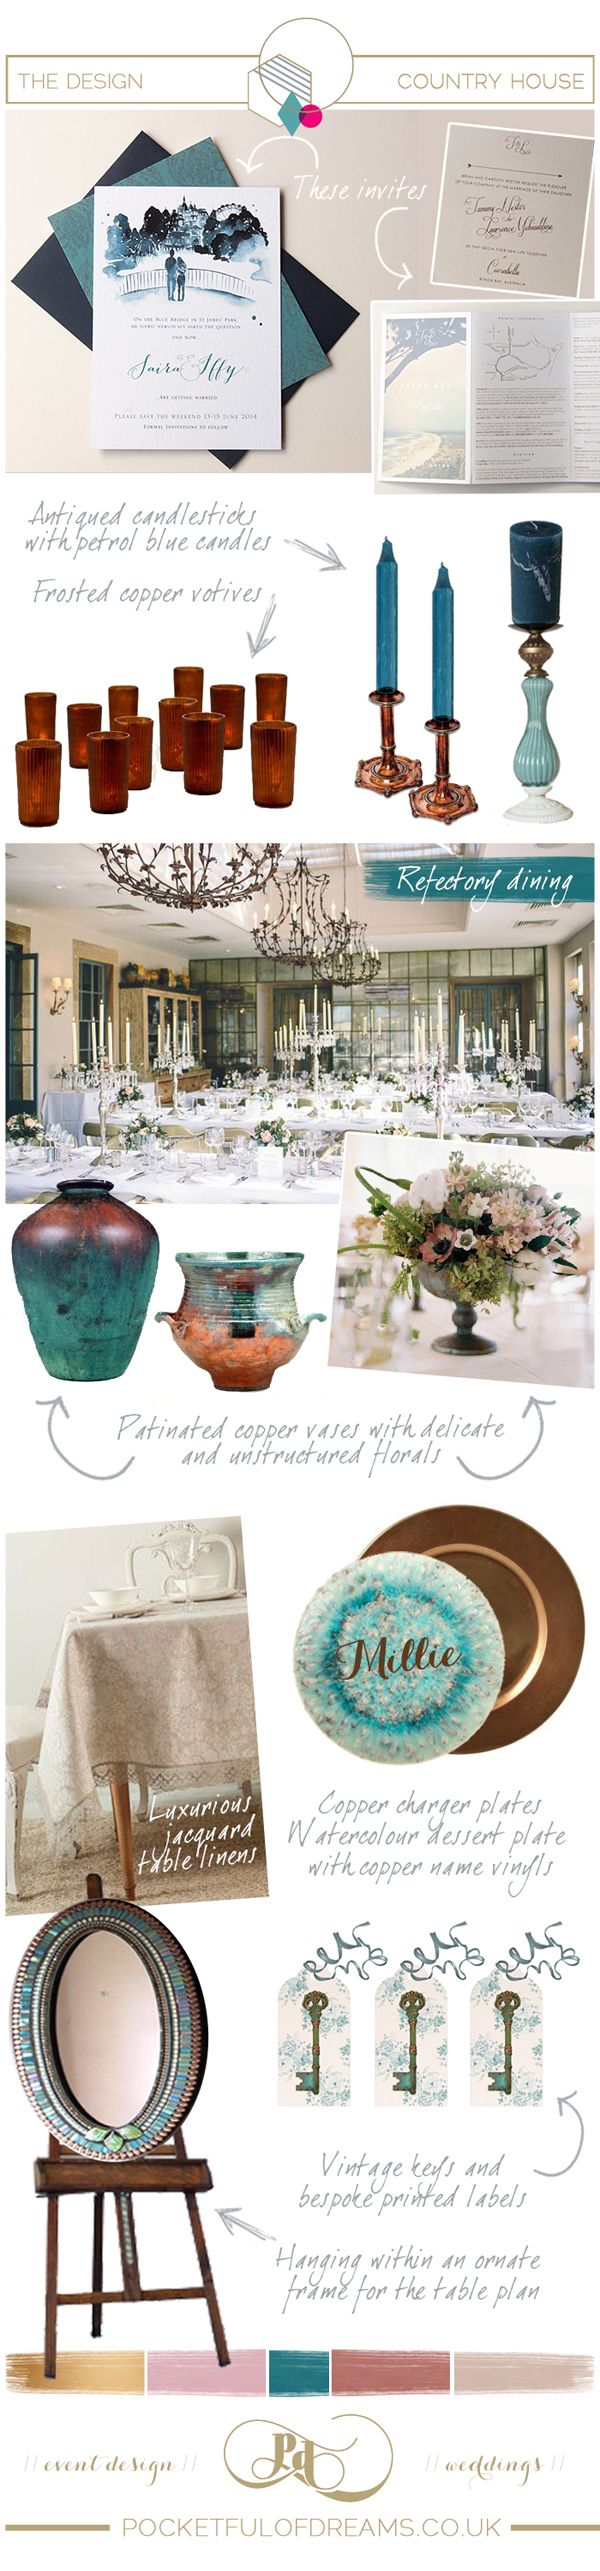 A Pocketful of Dreams designed Country House inspiration board series, inspired by Babington House (sister hotel to Soho House ) where Millie Mackintosh and Professor green got married last week.  Featuring an olde-worlde eclectic style, full of antiqued and patinated treasures and a rich colour palette of petrol blue, dusky pinks and copper.  For full post see Love My Dress